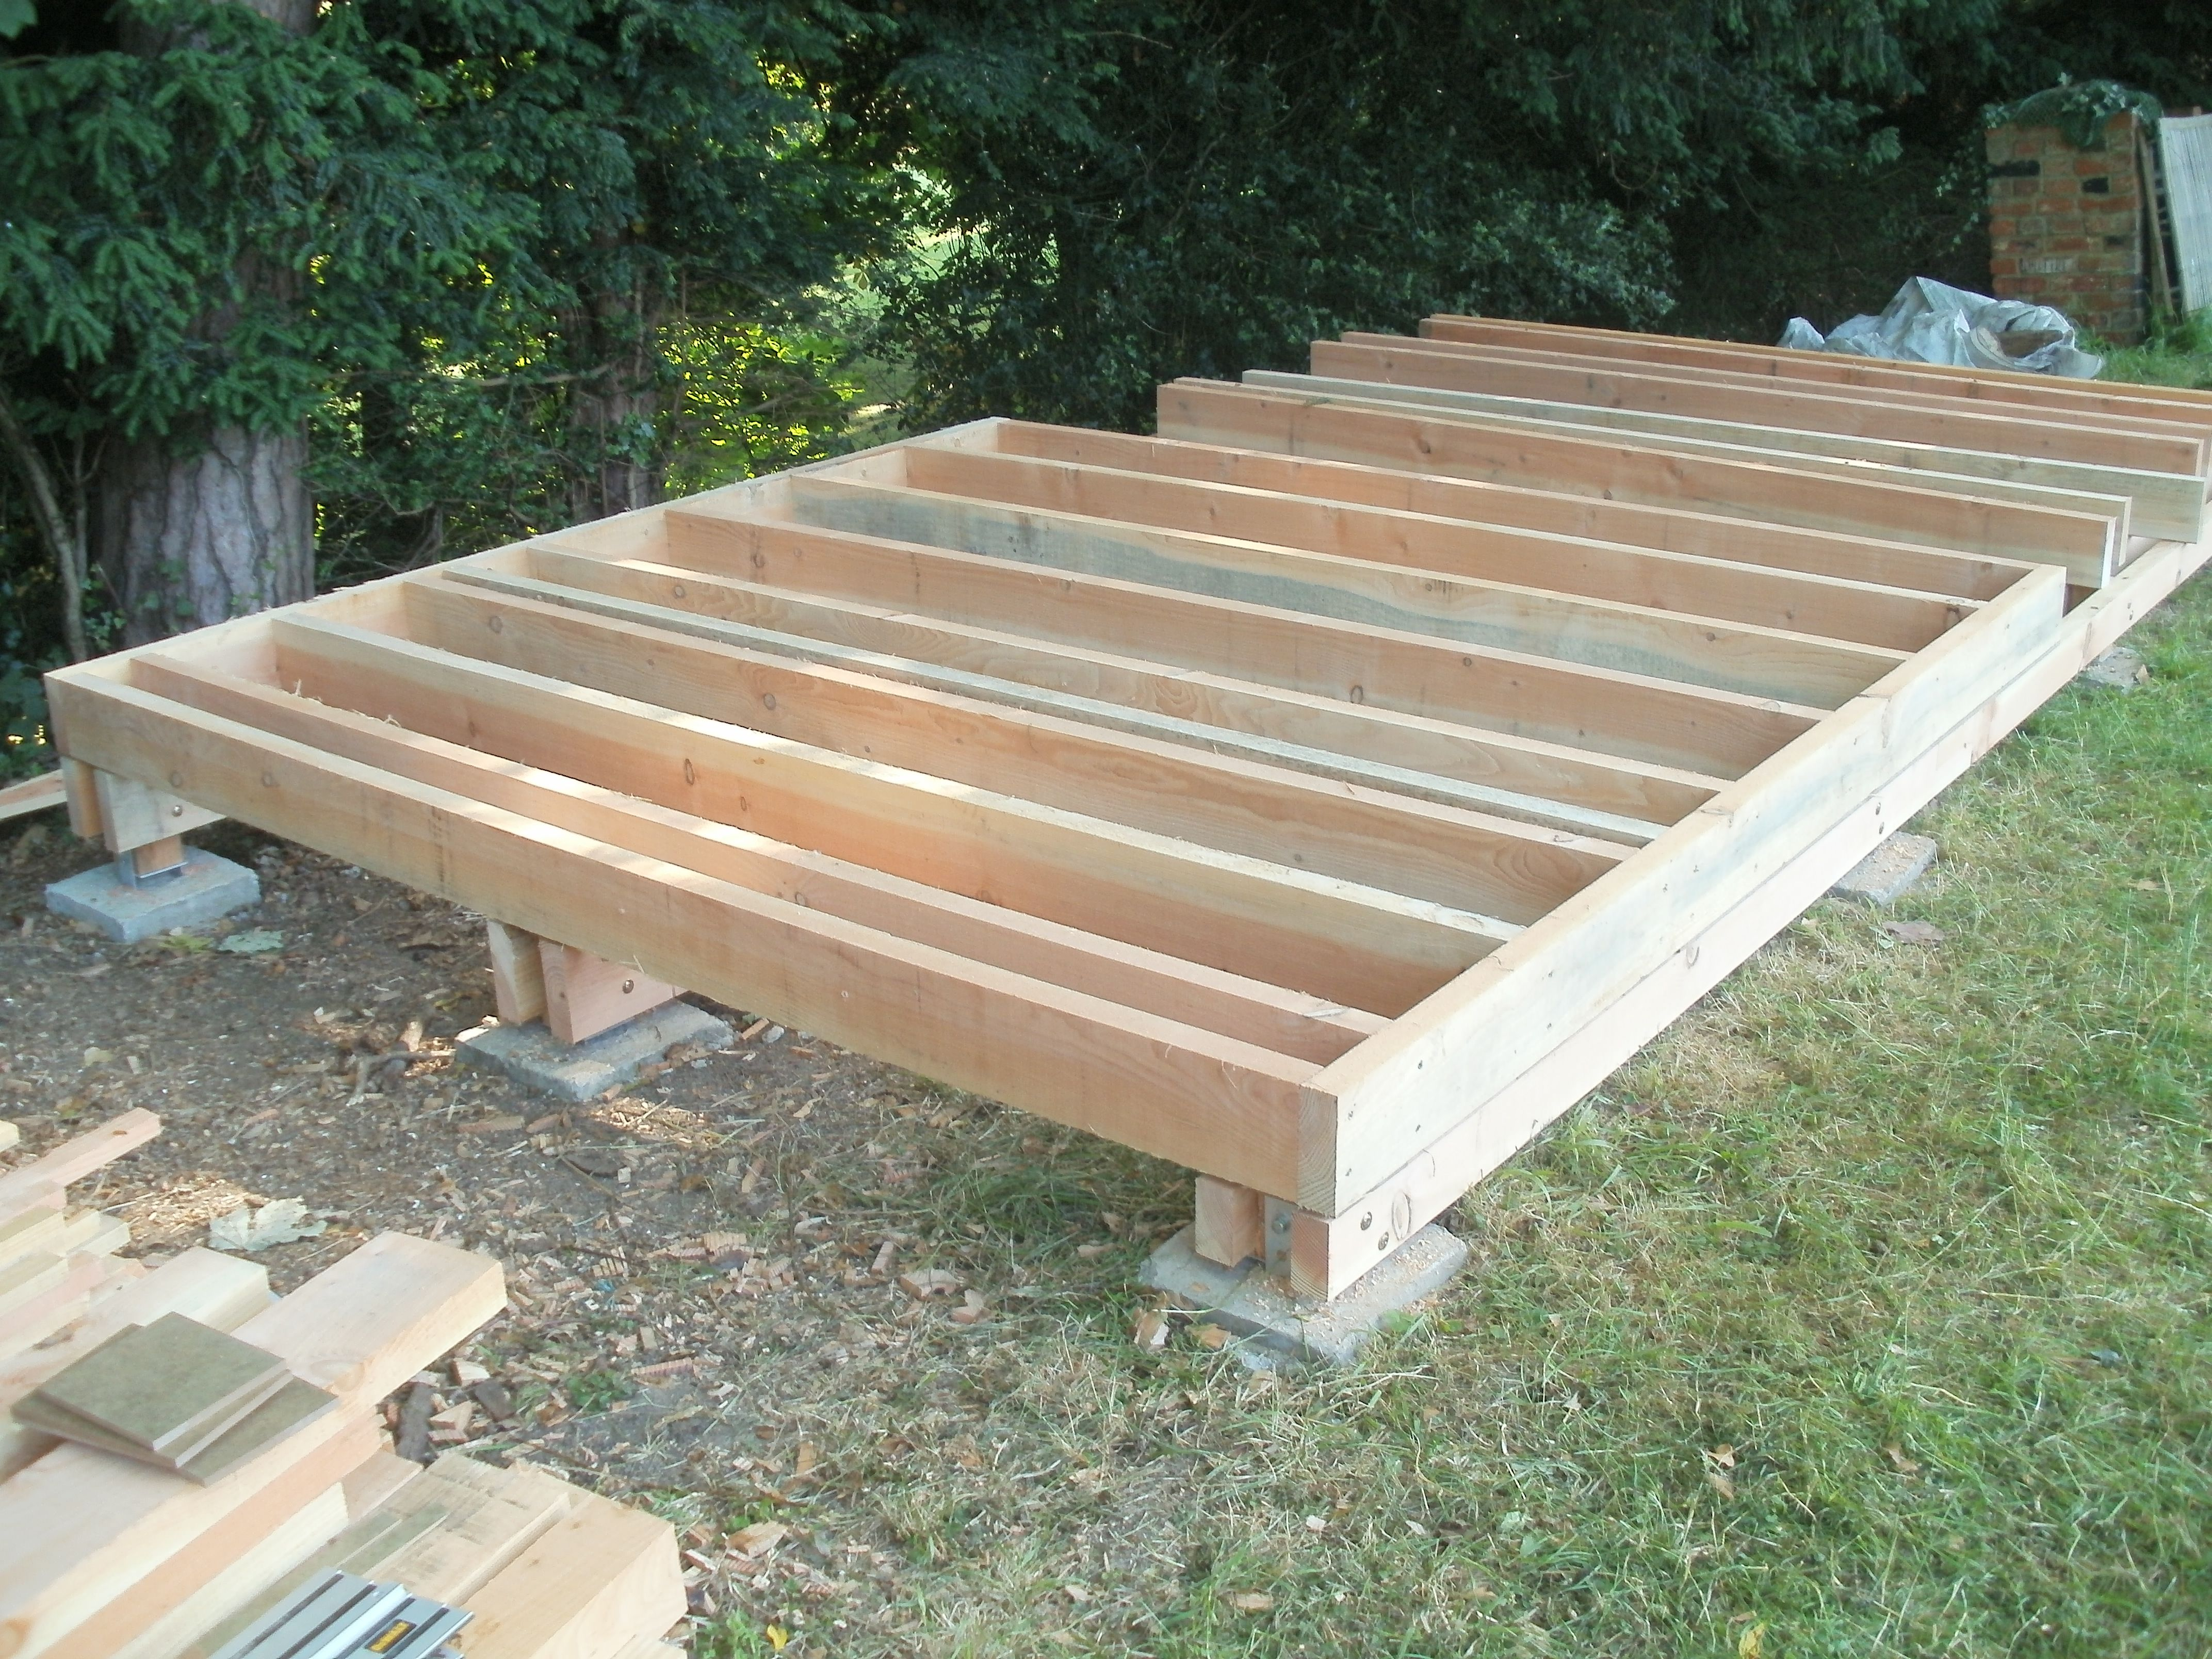 Floor Joists Of Douglas Fir Or Larch Posts Allow For 400 x 300